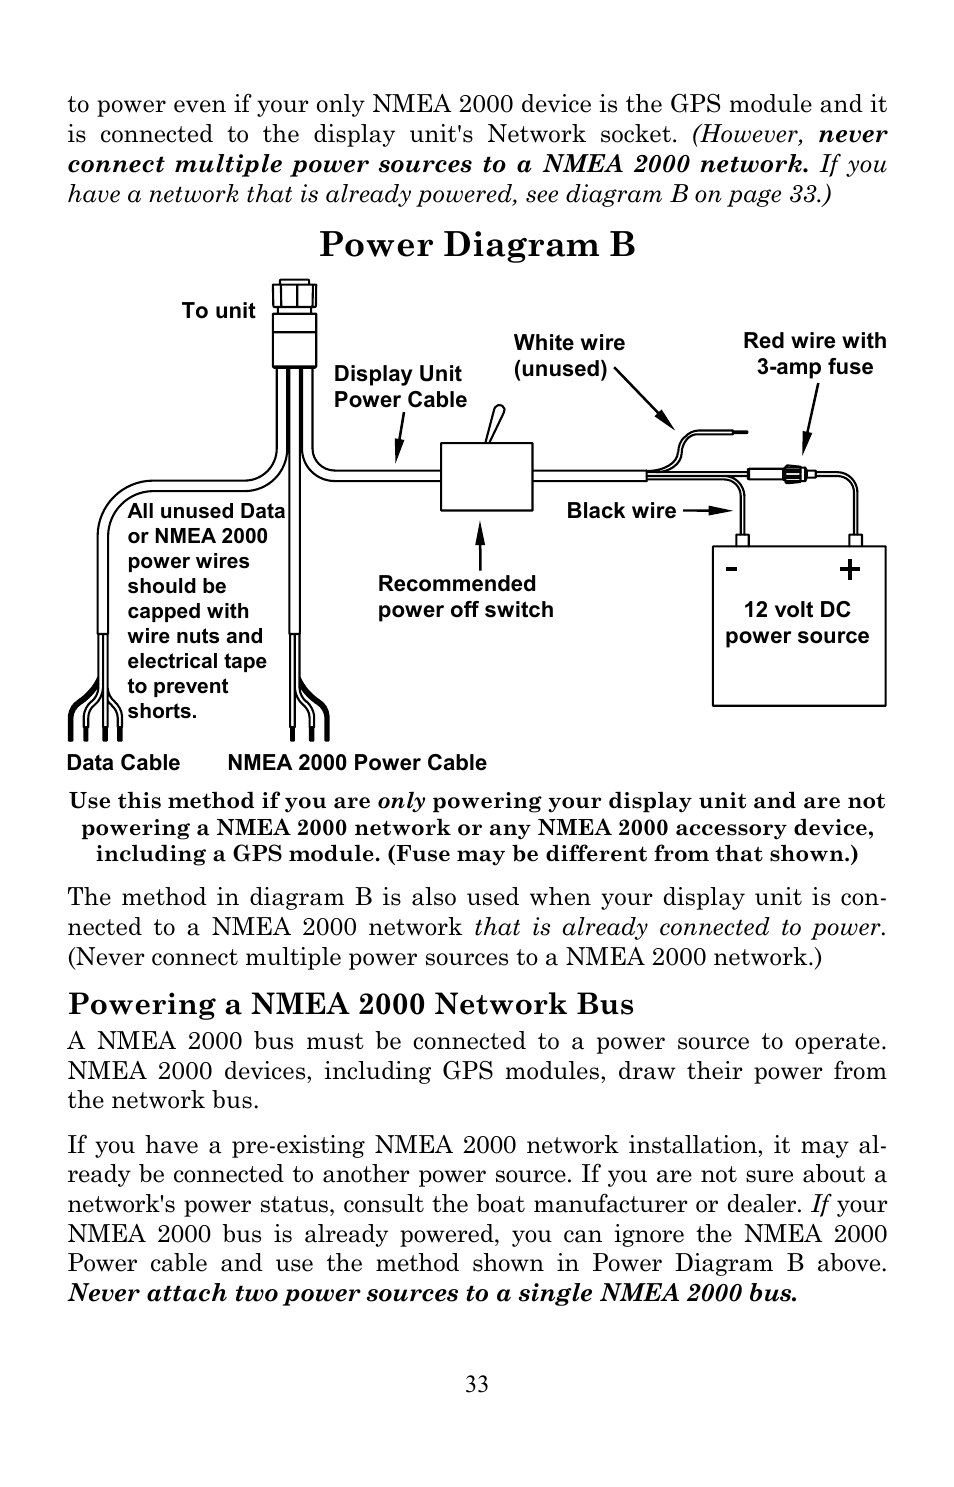 Lowrance Lms Wiring Diagram Automotive For Structure Scan Power B Powering A Nmea 2000 Network Bus Rh Manualsdir Com Lss 1